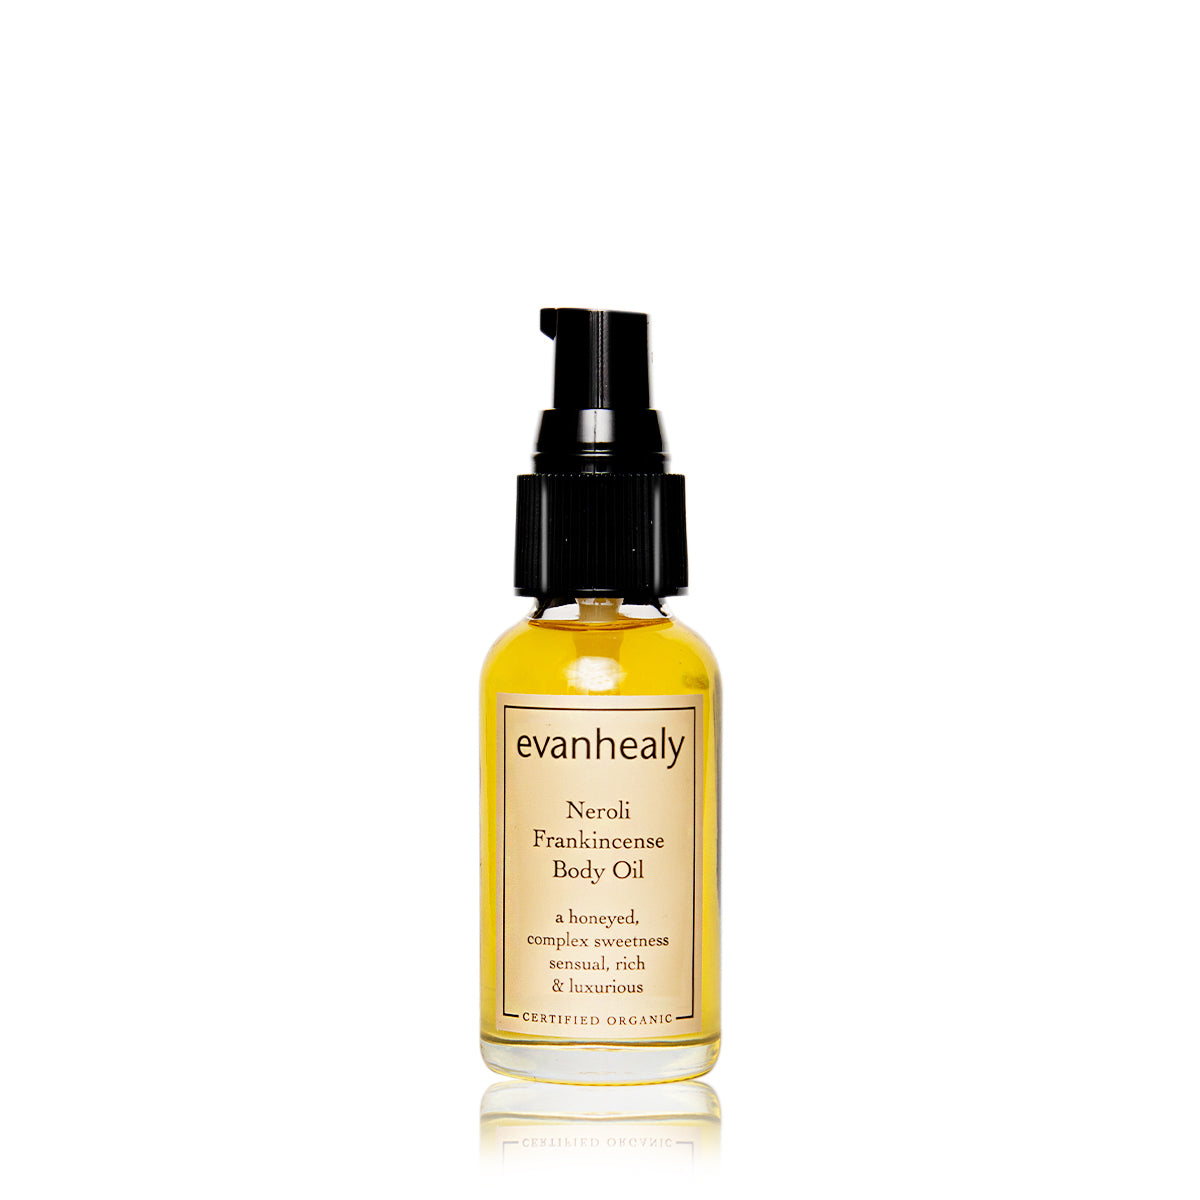 Neroli Frankincense Body Oil